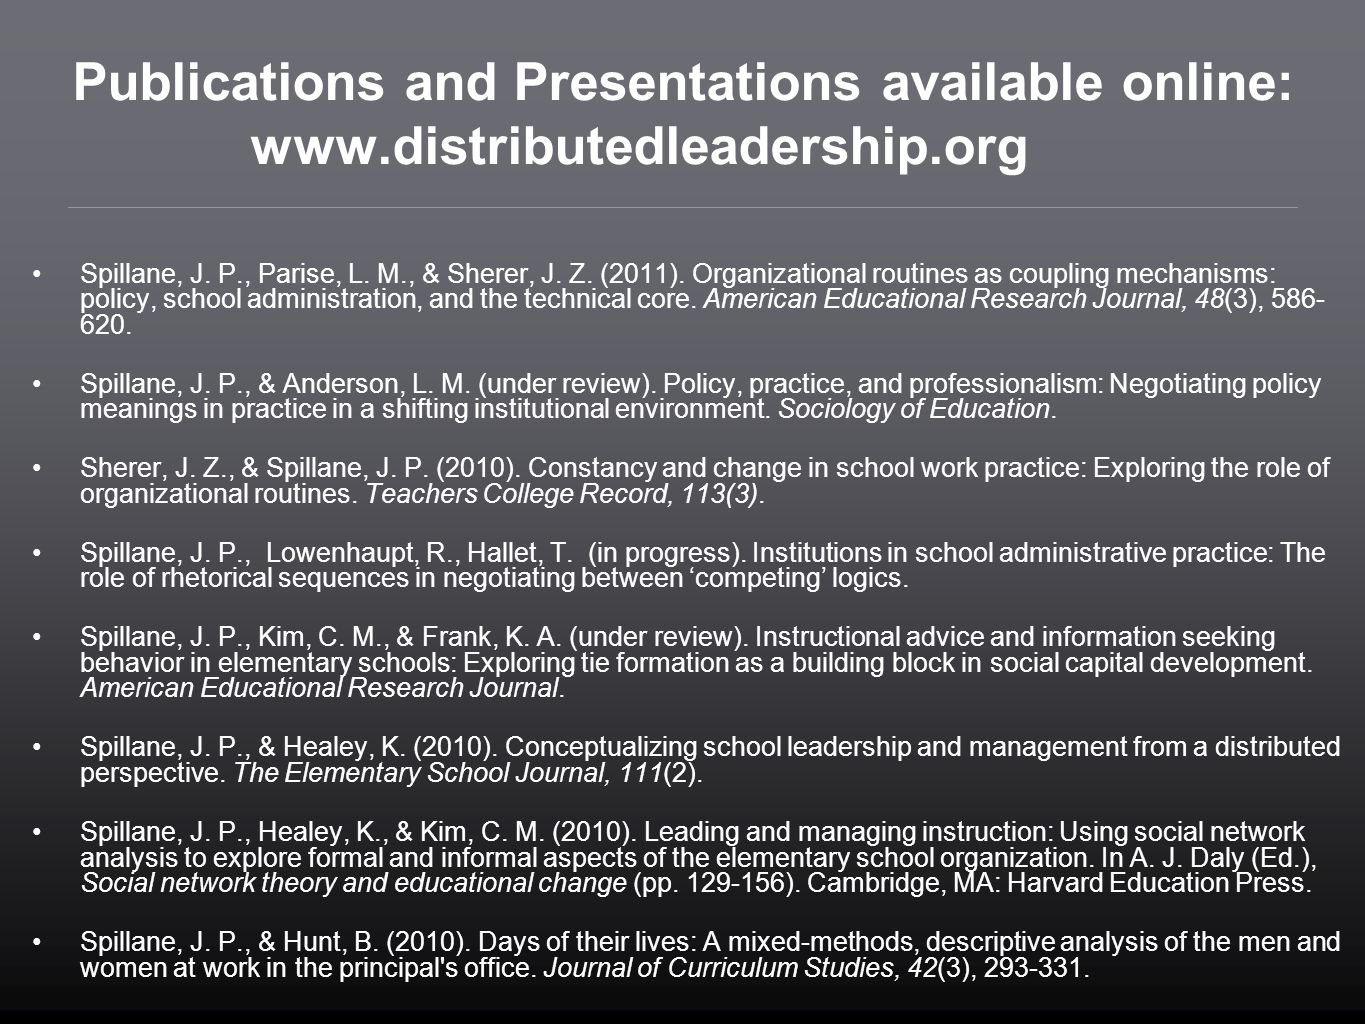 Publications and Presentations available online: www